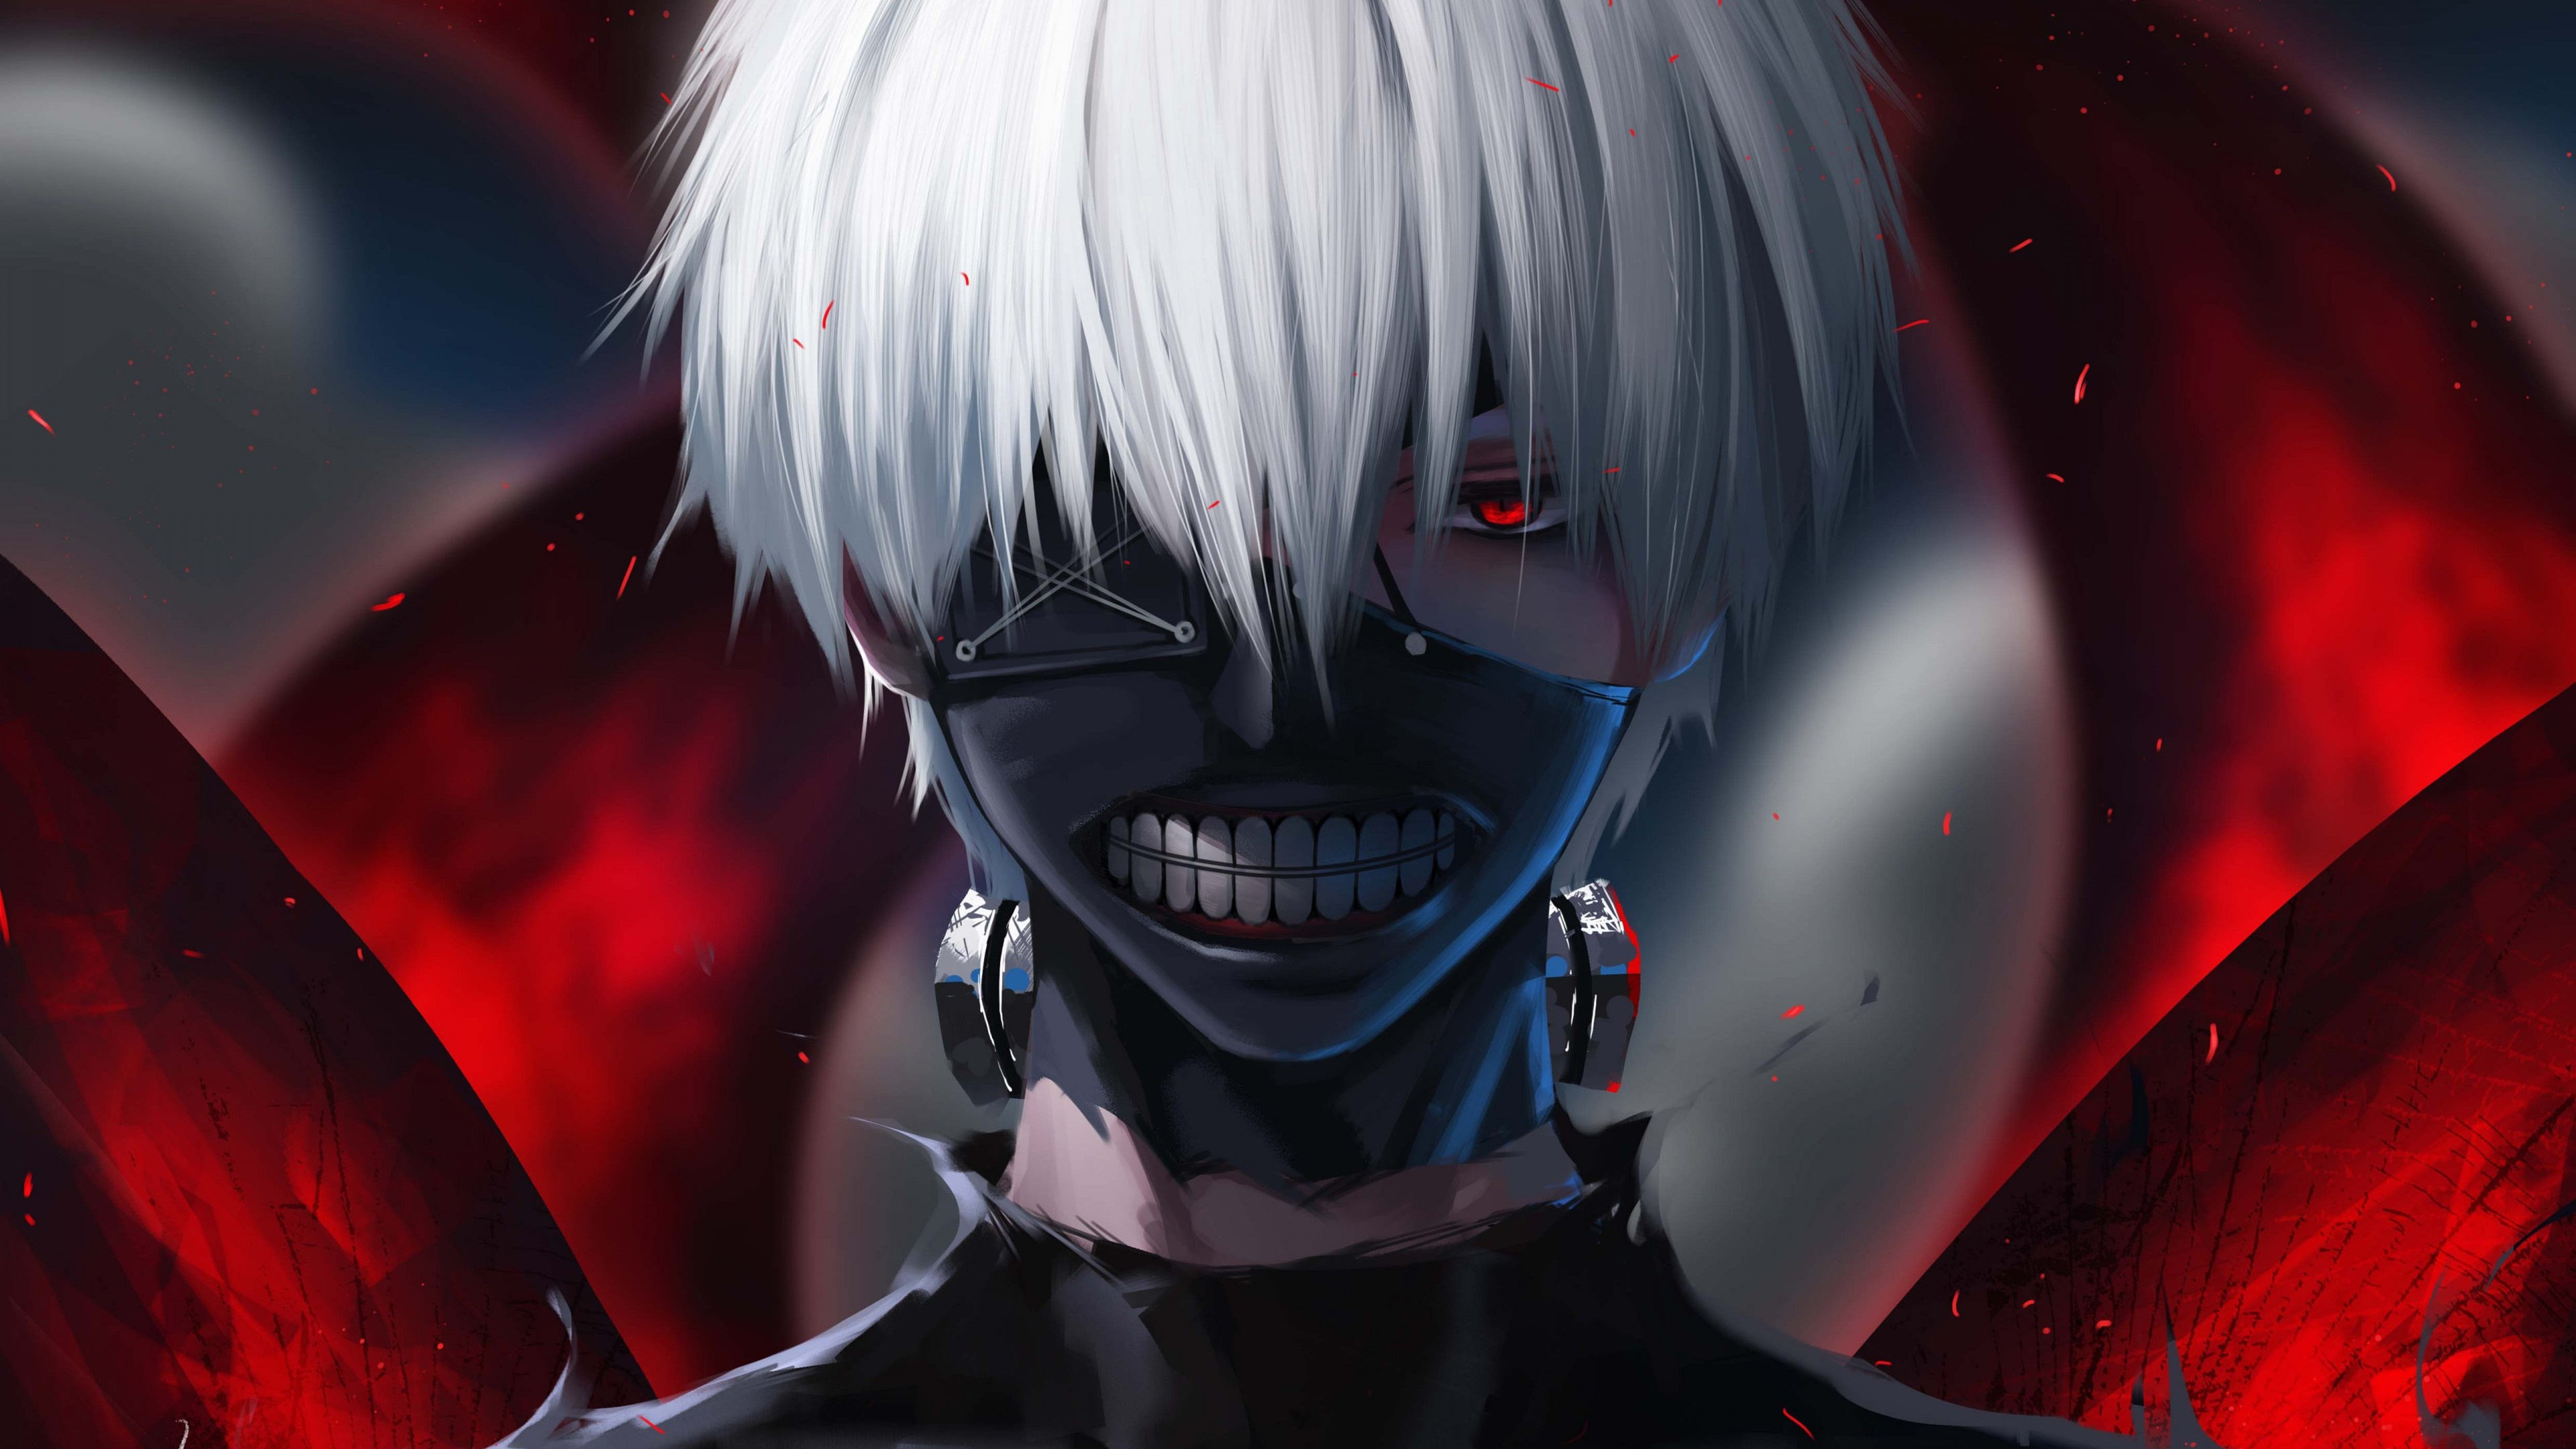 Tokyo Ghoul background wallpaper